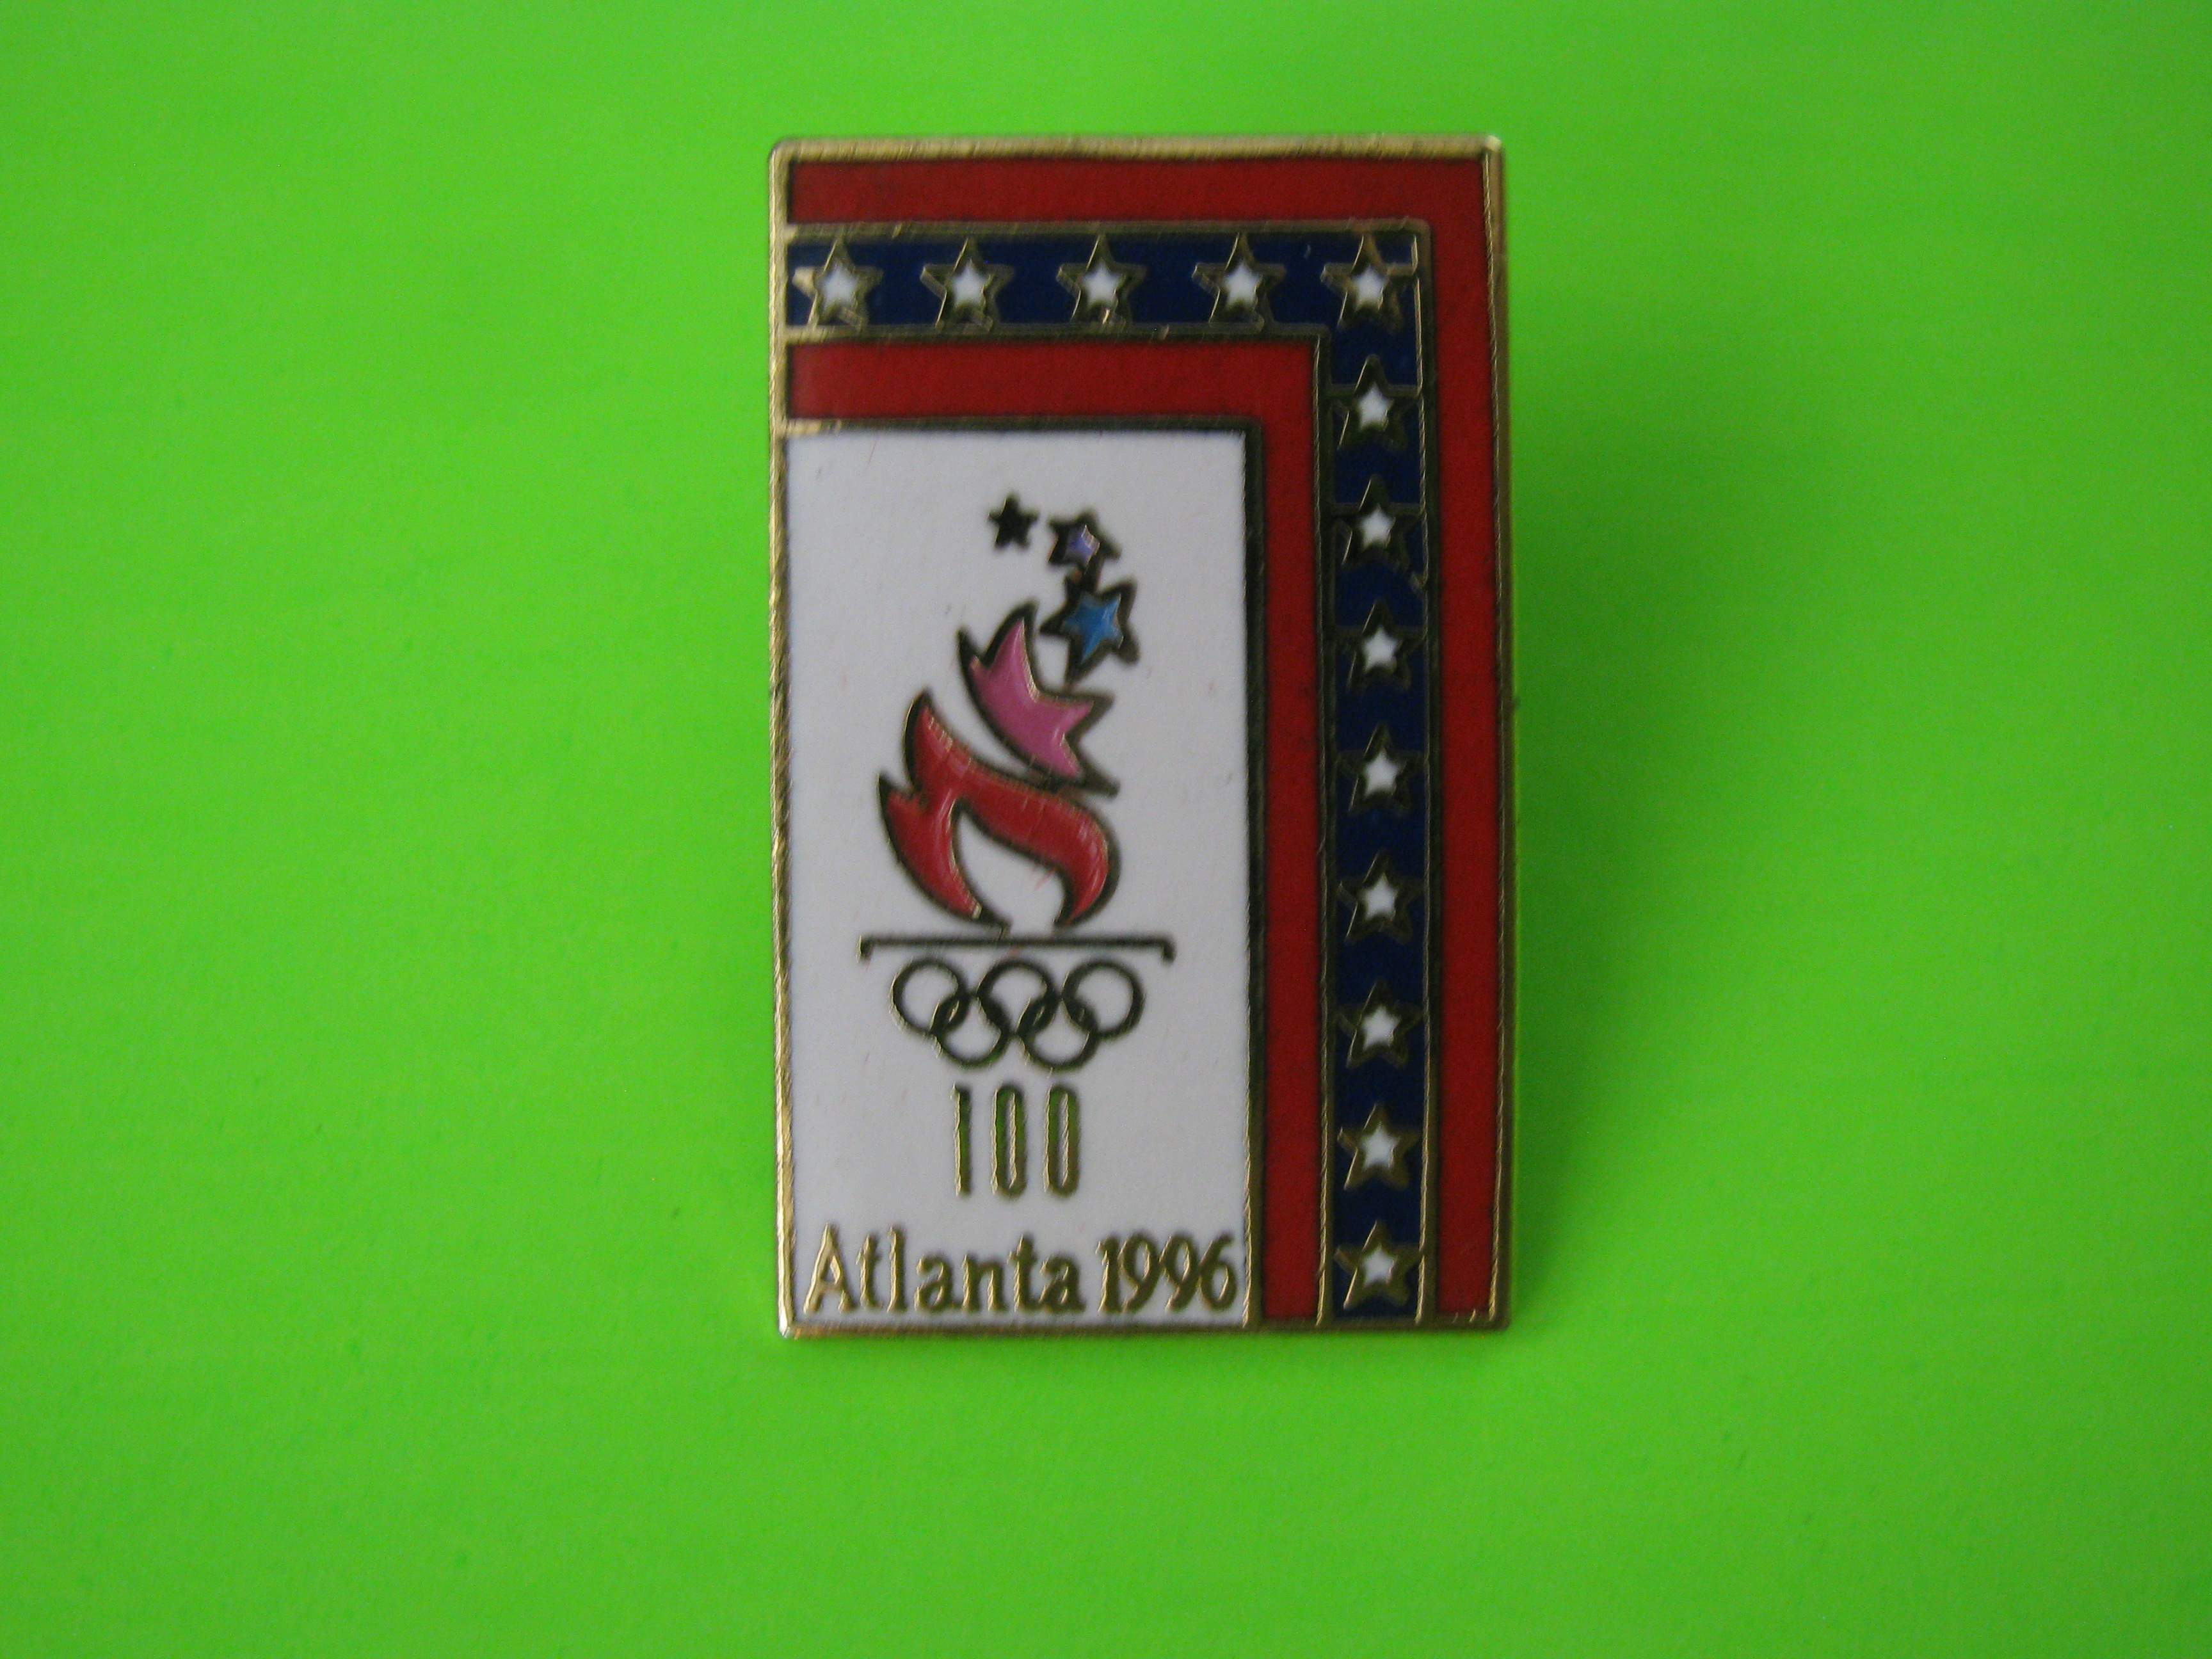 Vintage Atlanta 1996 Olympic Games Pin with Metal Butterfly Clutch